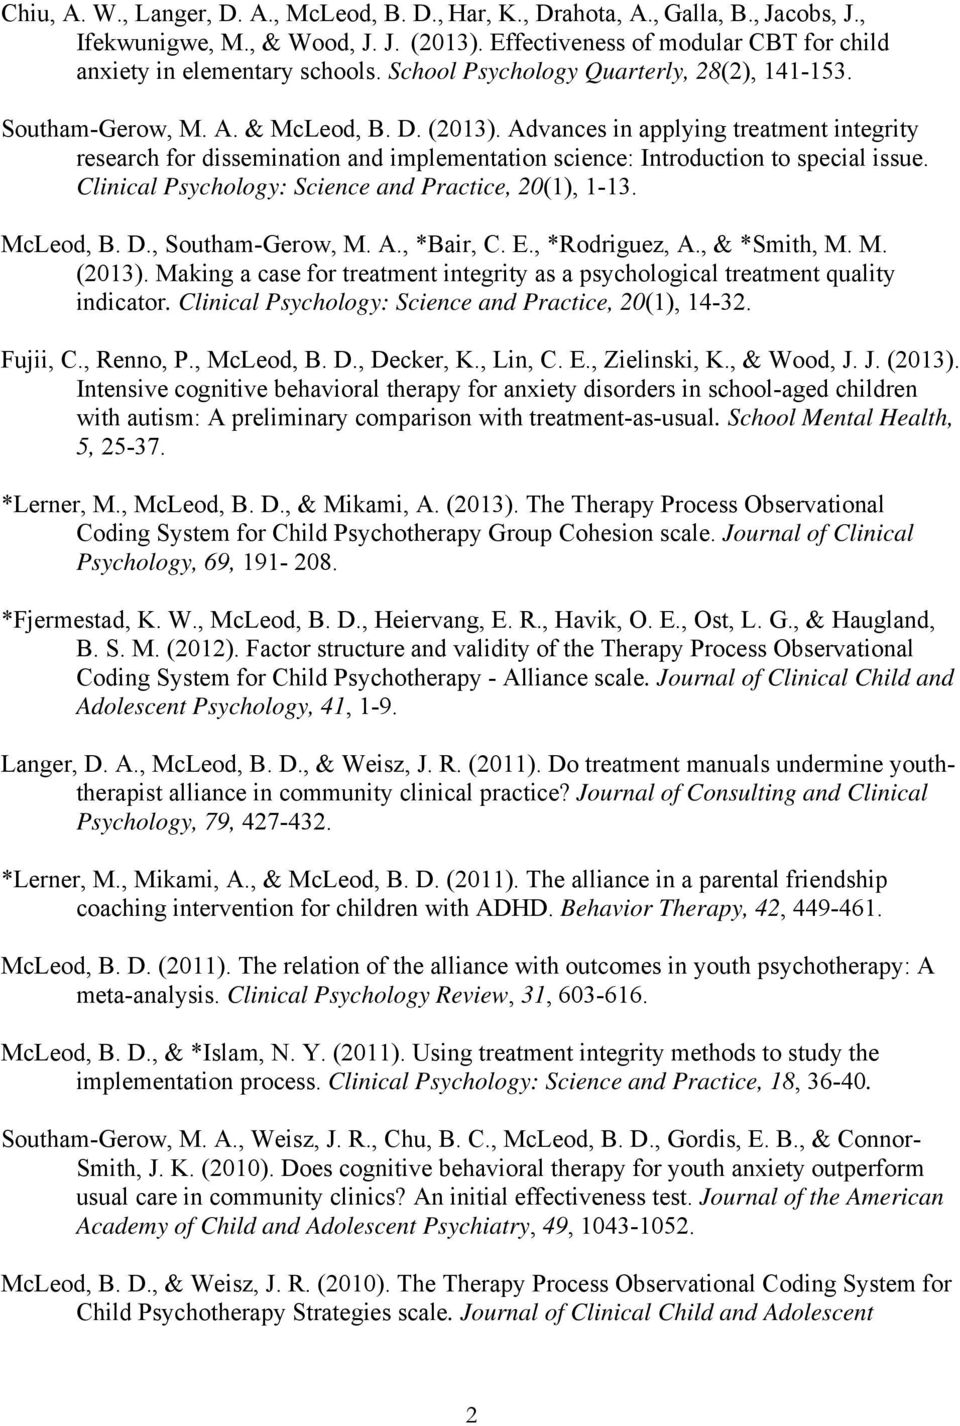 Advances in applying treatment integrity research for dissemination and implementation science: Introduction to special issue. Clinical Psychology: Science and Practice, 20(1), 1-13. McLeod, B. D.